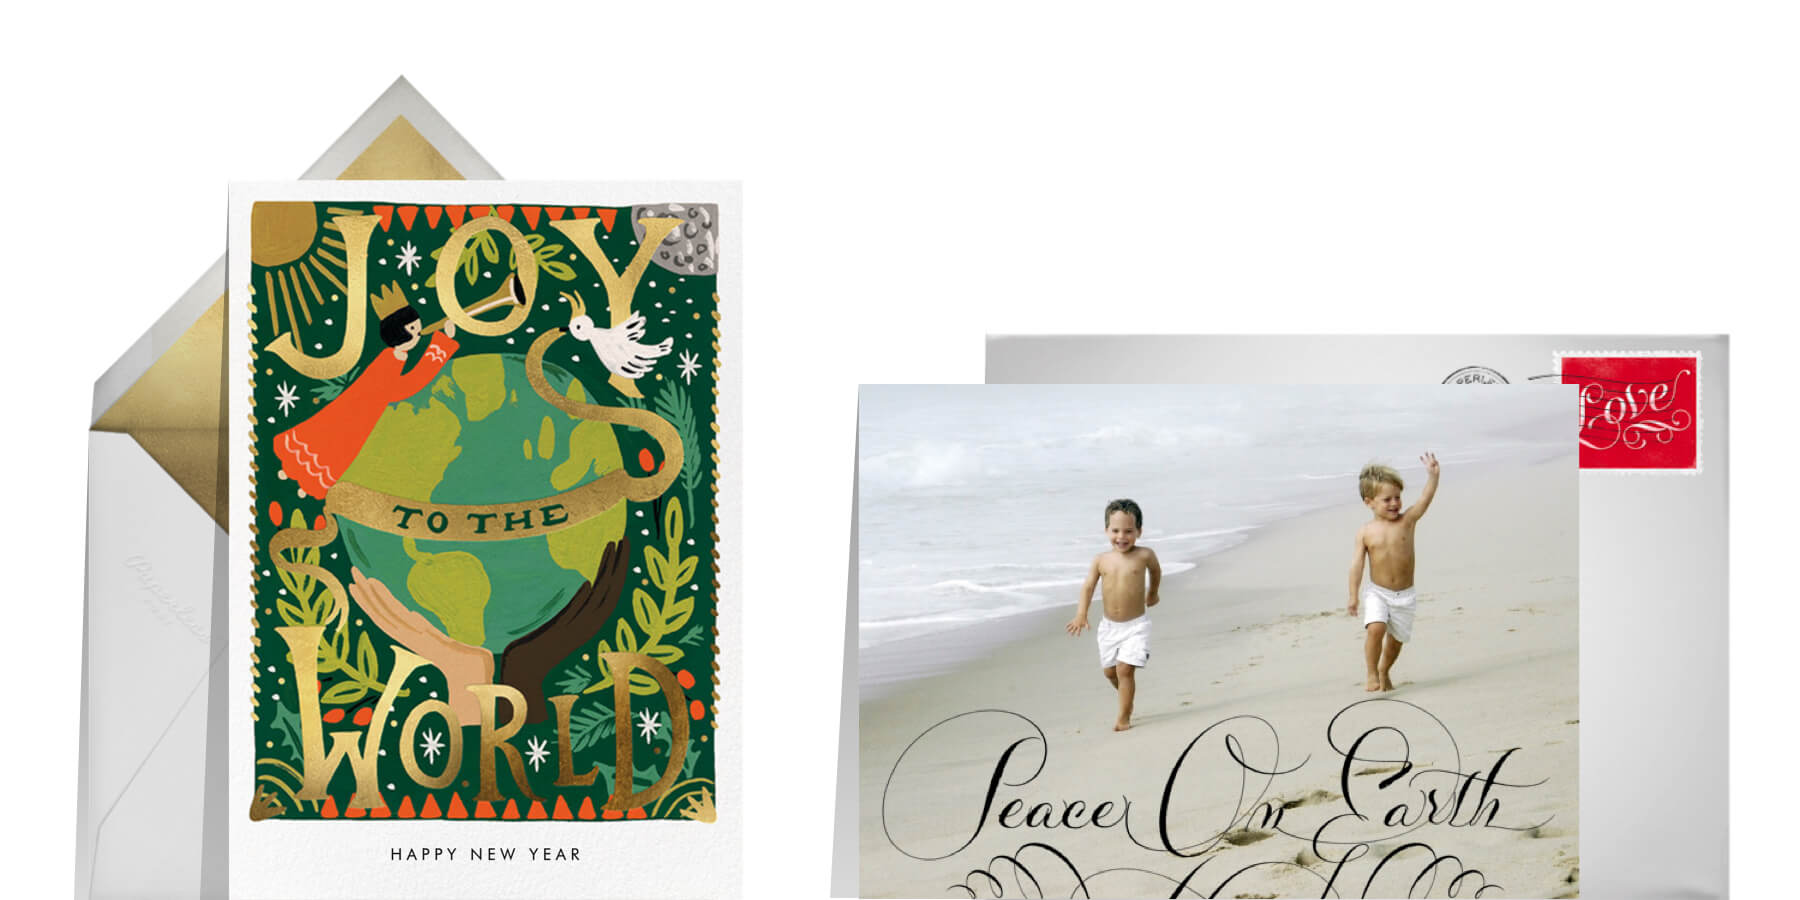 religious New Years wishes featuring New Year greeting cards from Rifle Paper Co. and Bernard Maisner